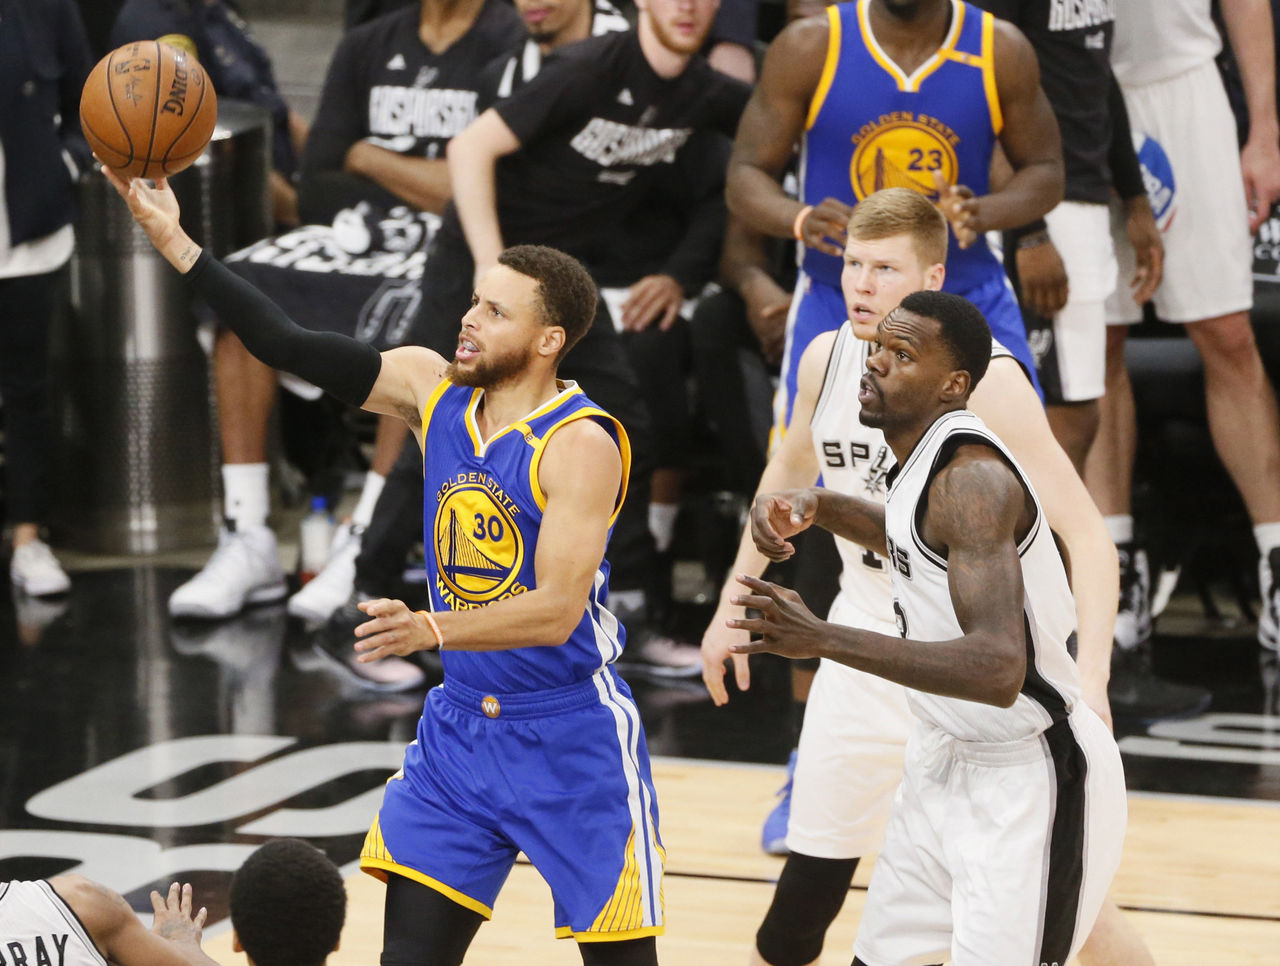 Cropped 2017 05 23t035423z 1807771898 nocid rtrmadp 3 nba playoffs golden state warriors at san antonio spurs